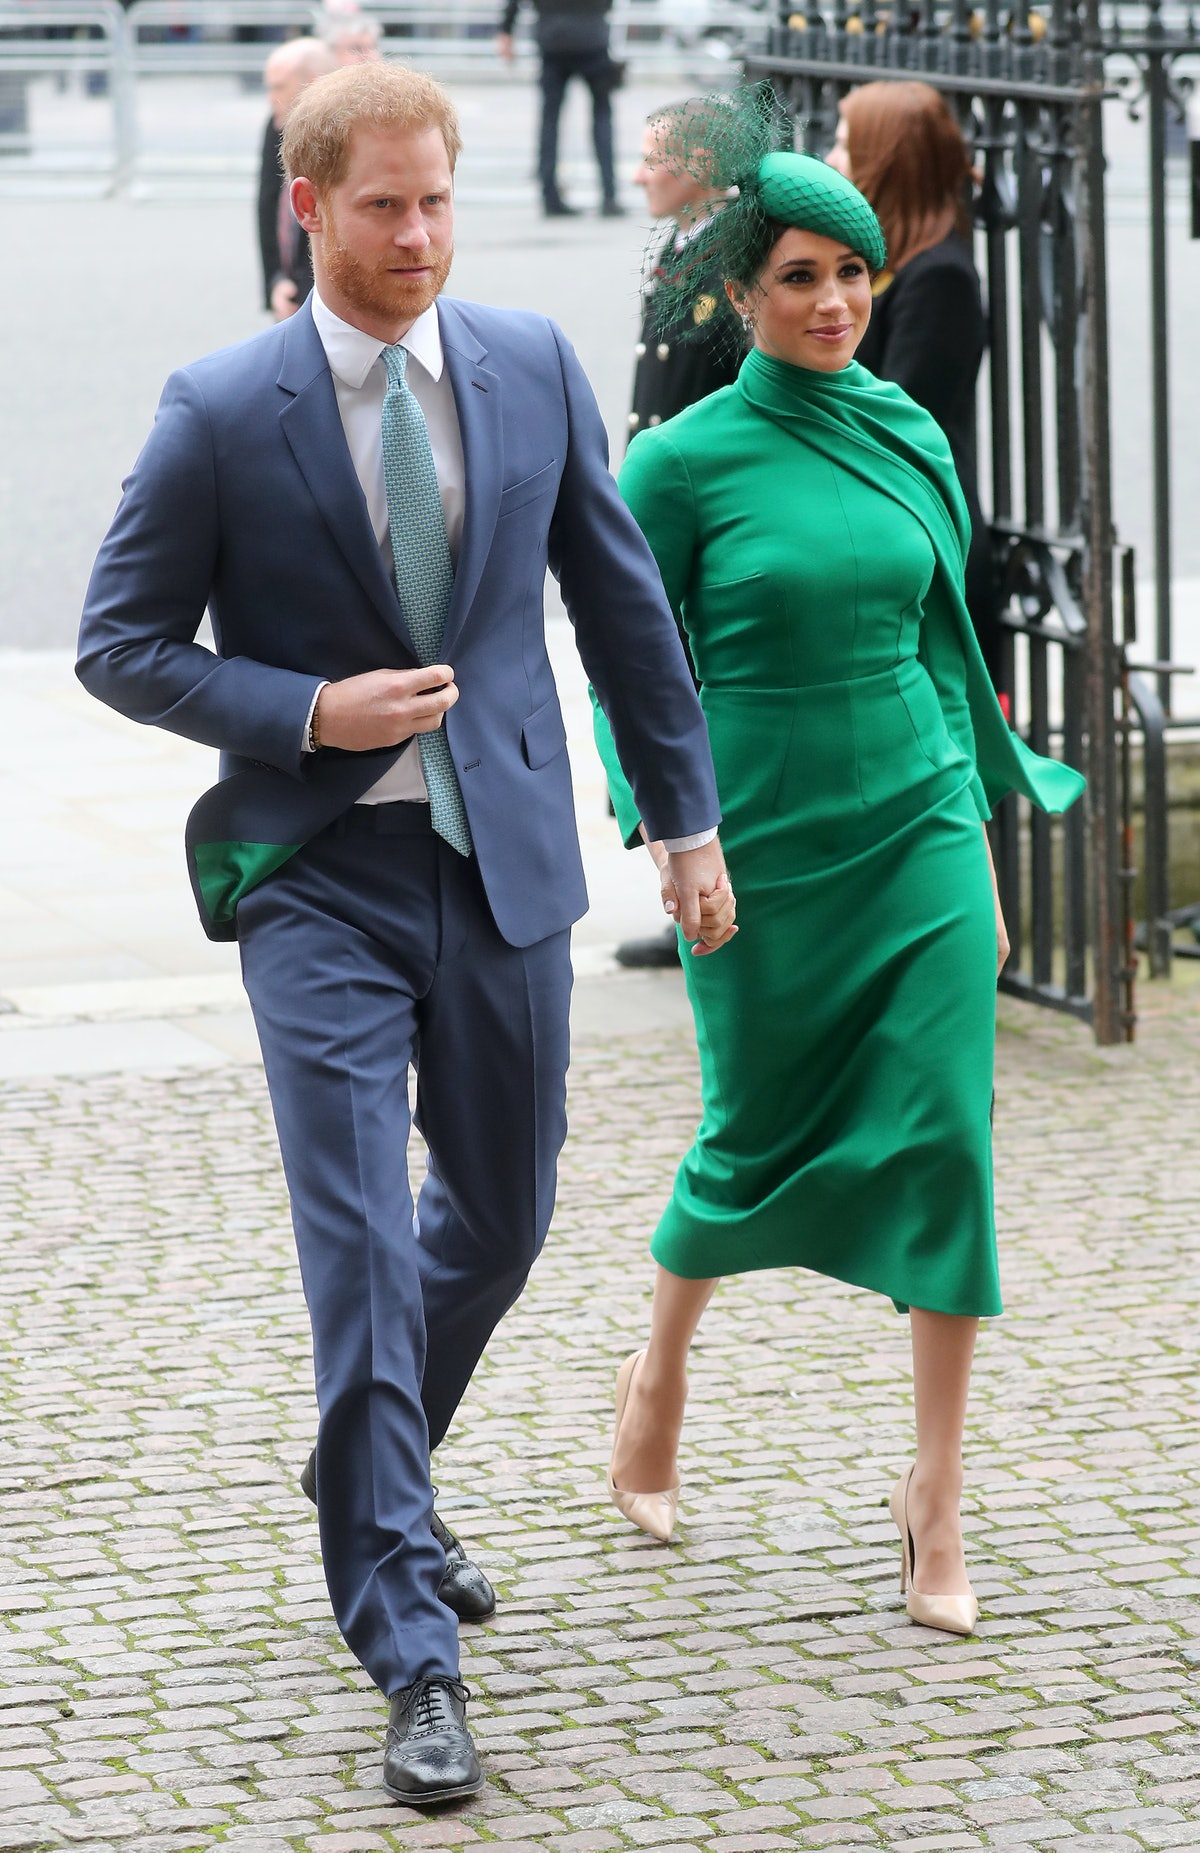 Meghan Markle is shown here in an emerald green ensemble consisting of a dress and matching scarf an...